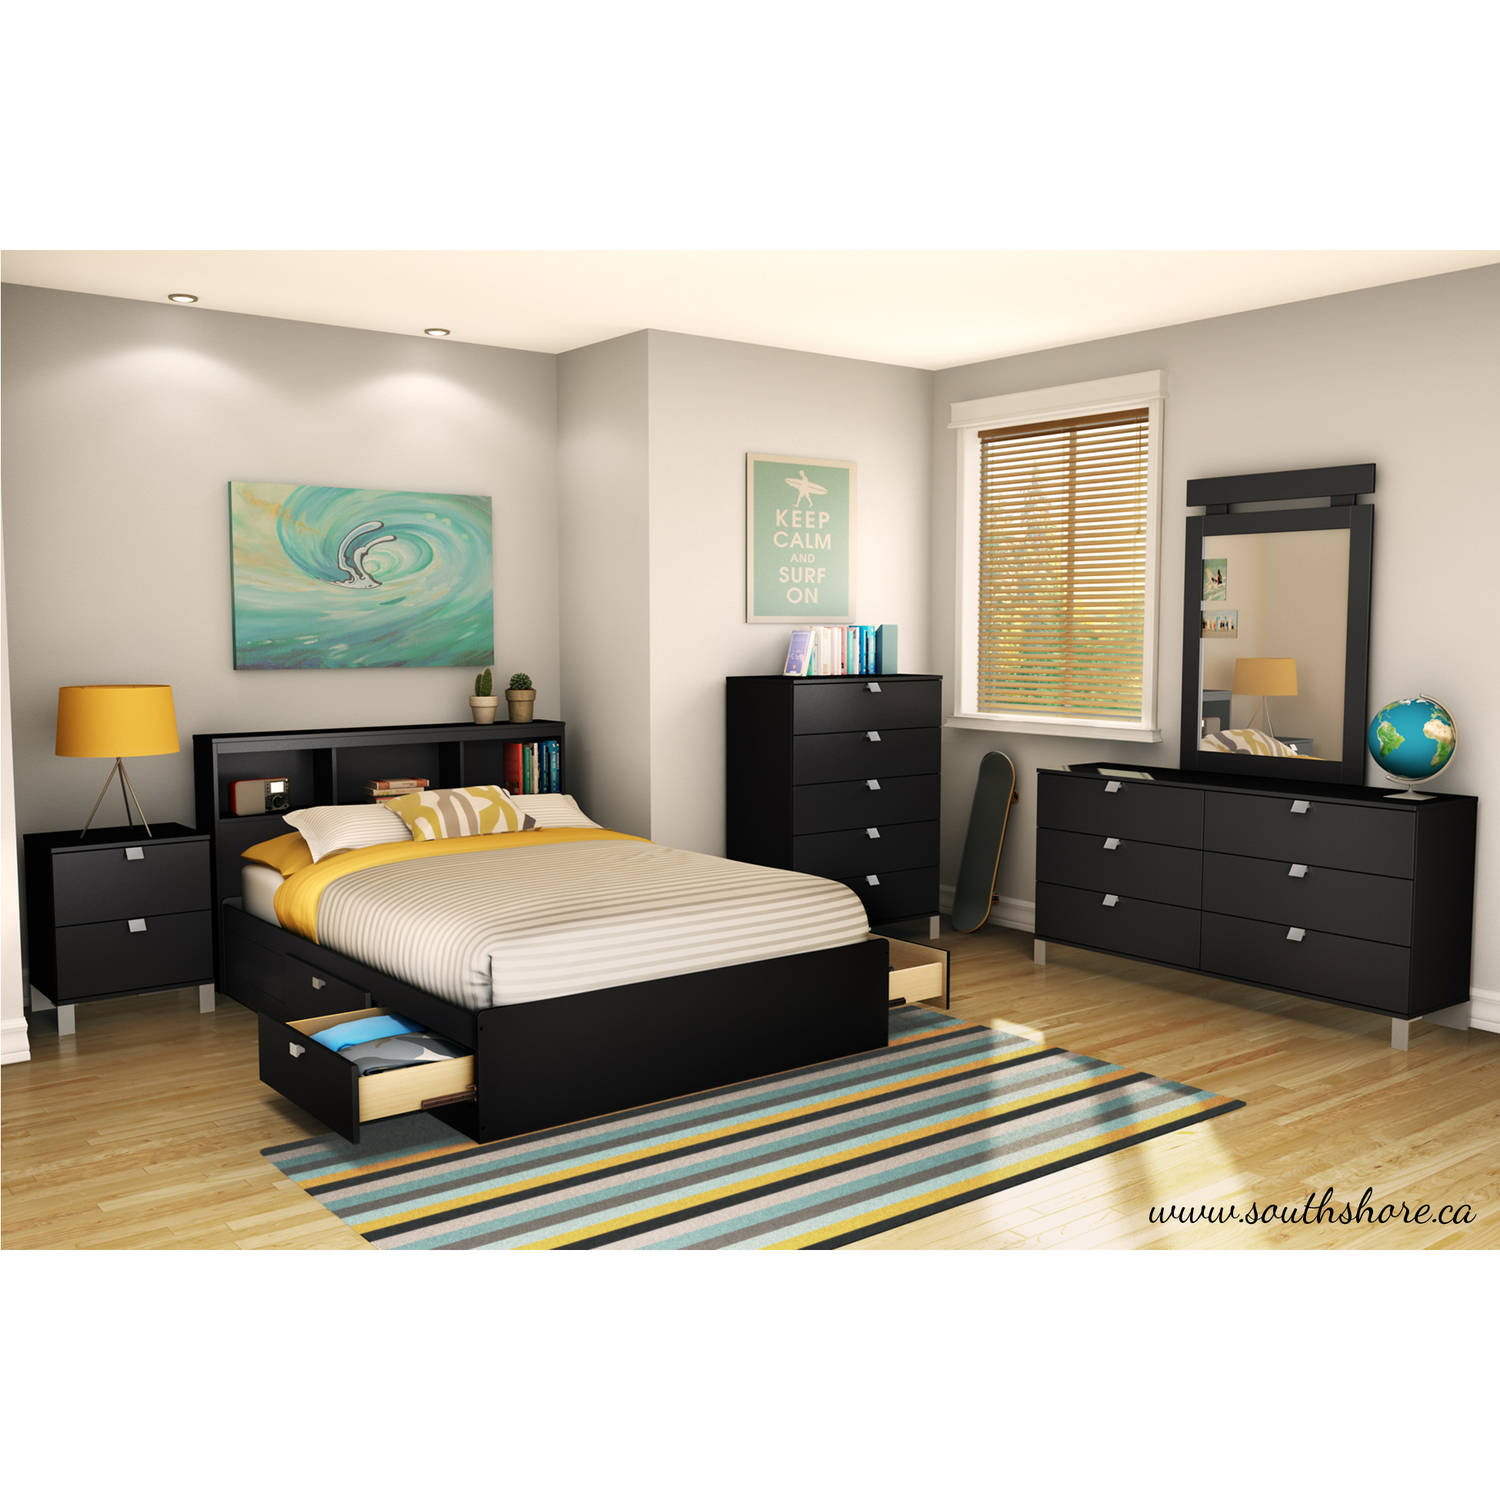 South Shore Bedroom Furniture South Shore Spark Full 54 Bookcase Headboard Multiple Finishes